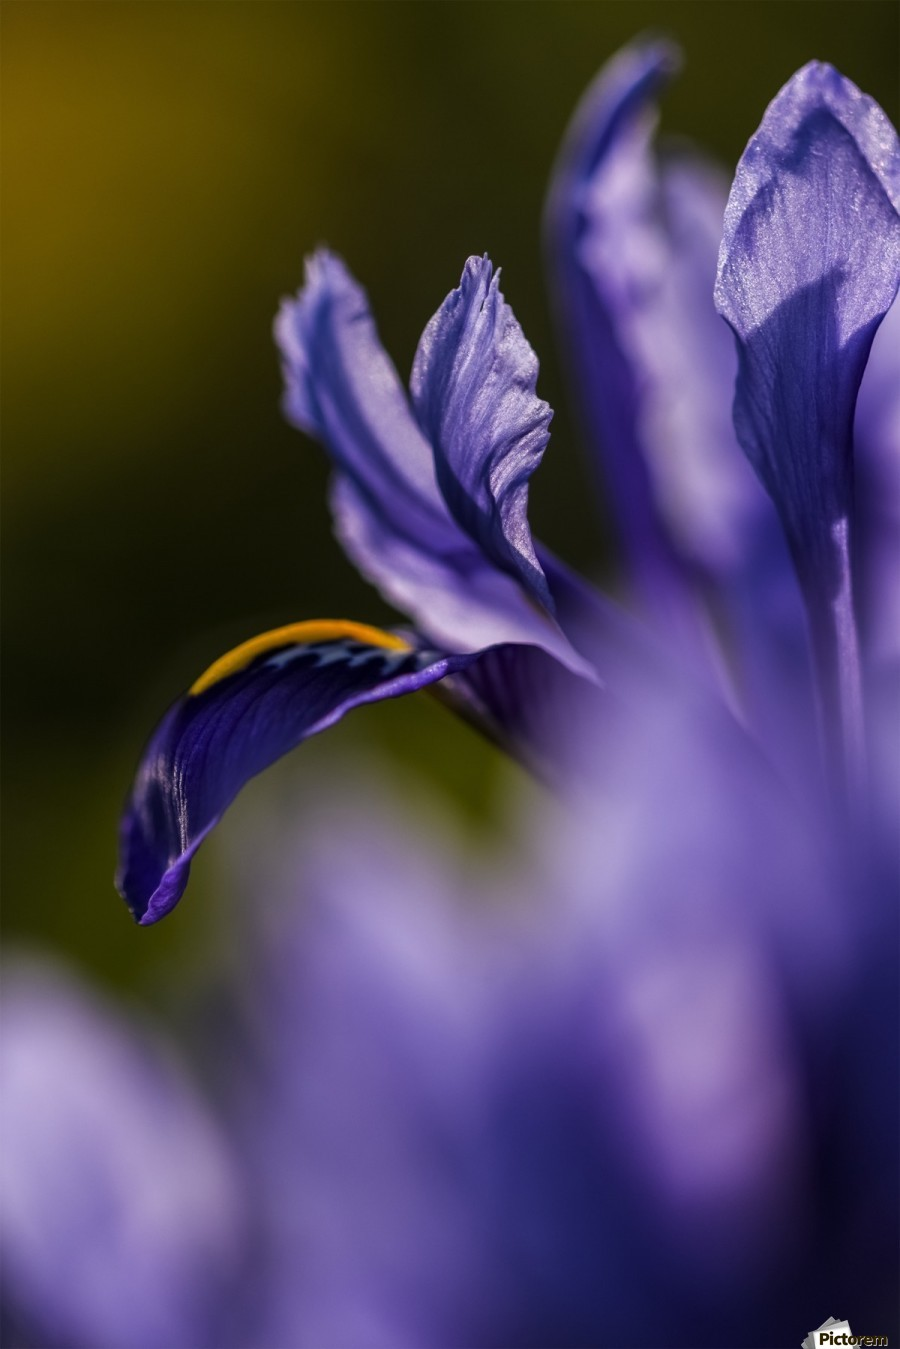 The Dwarf Iris Is One Of The First Flowers To Bloom In The Spring